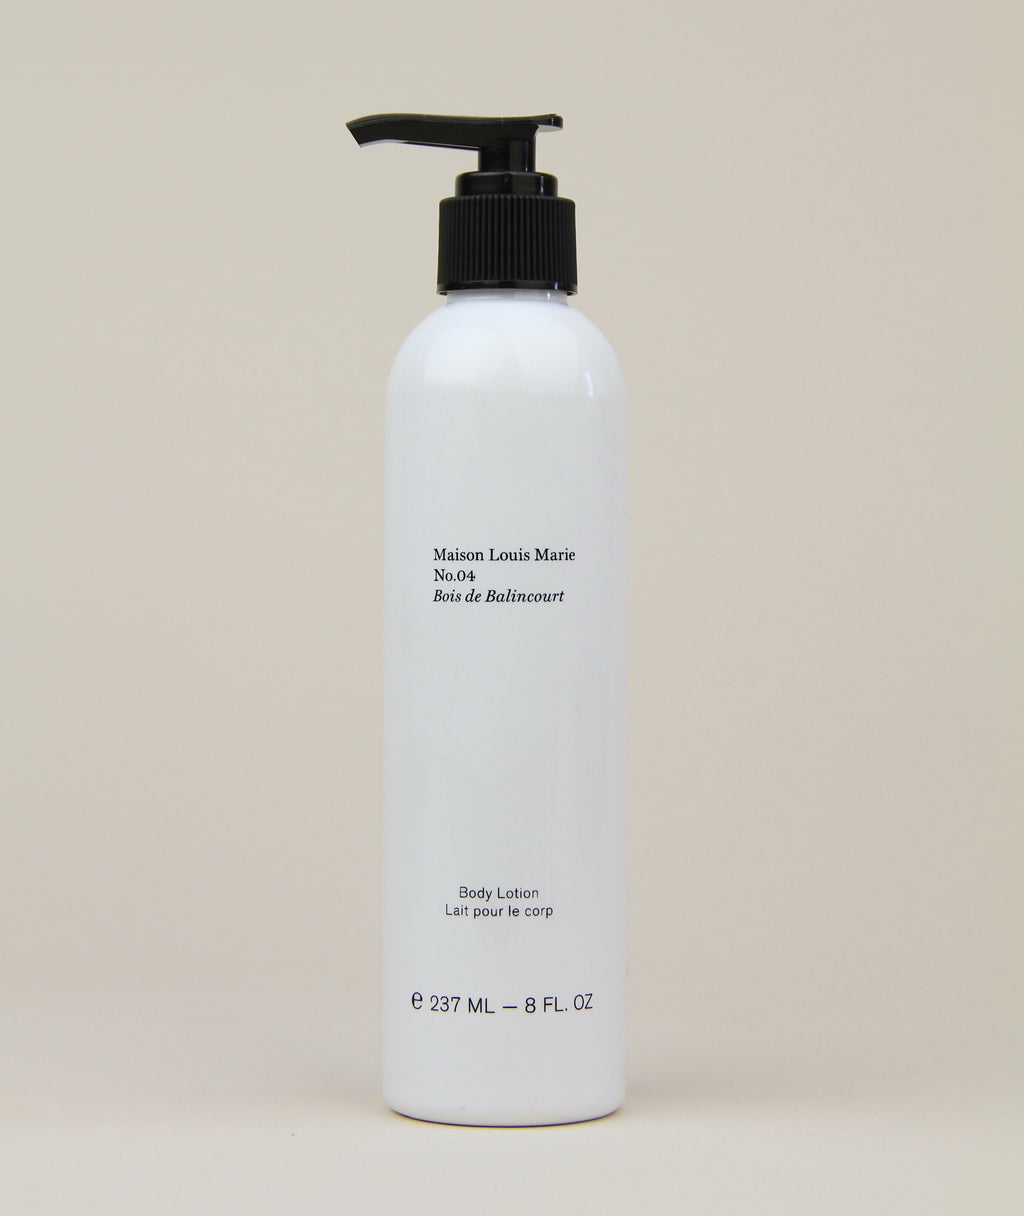 Maison Louis Marie No. 4 Body Lotion